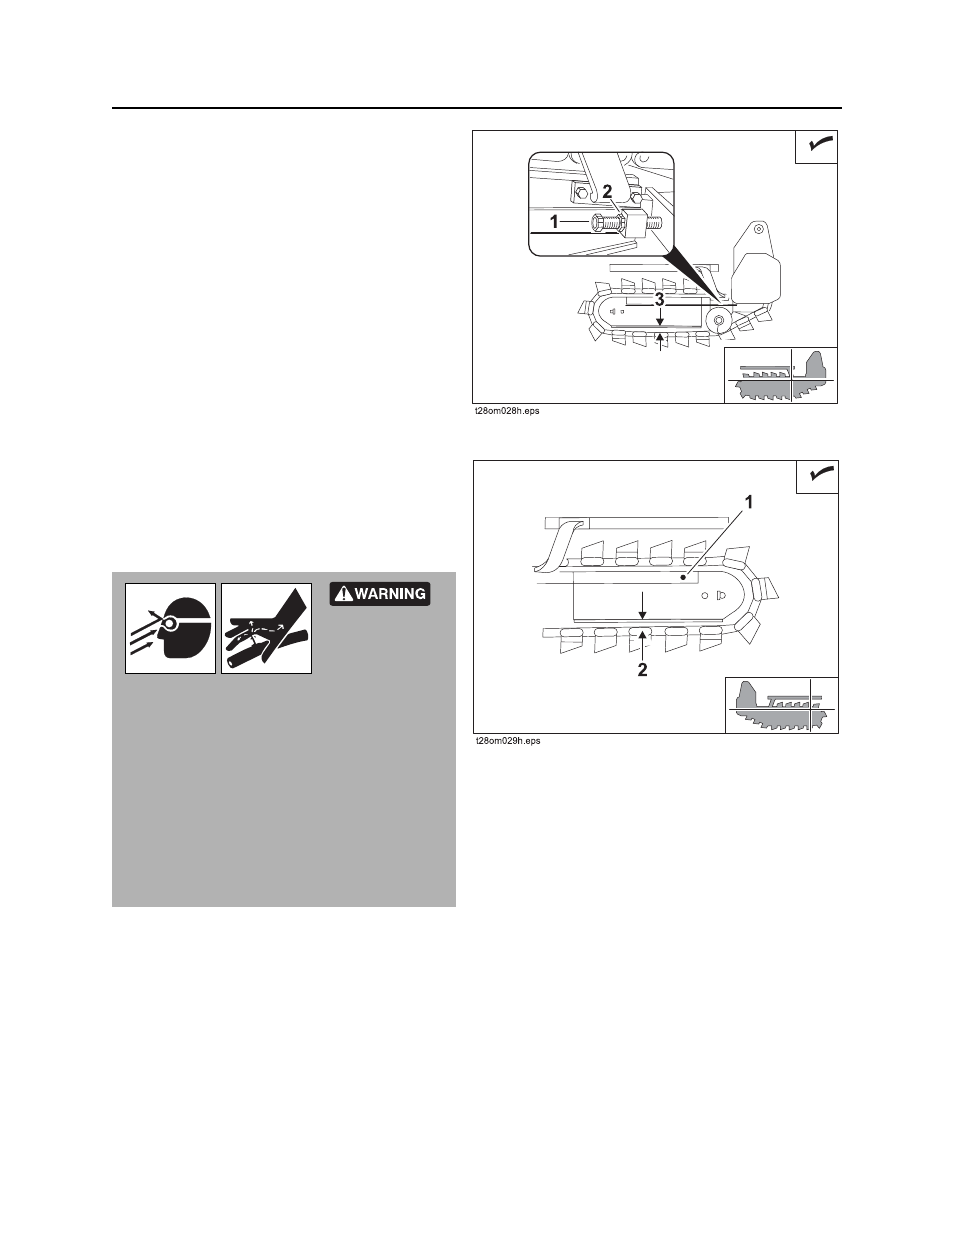 ditch witch rt wiring diagram wiring diagram for light switch Ditch Witch Electrical Diagrams Ditch Witch Electrical Diagrams